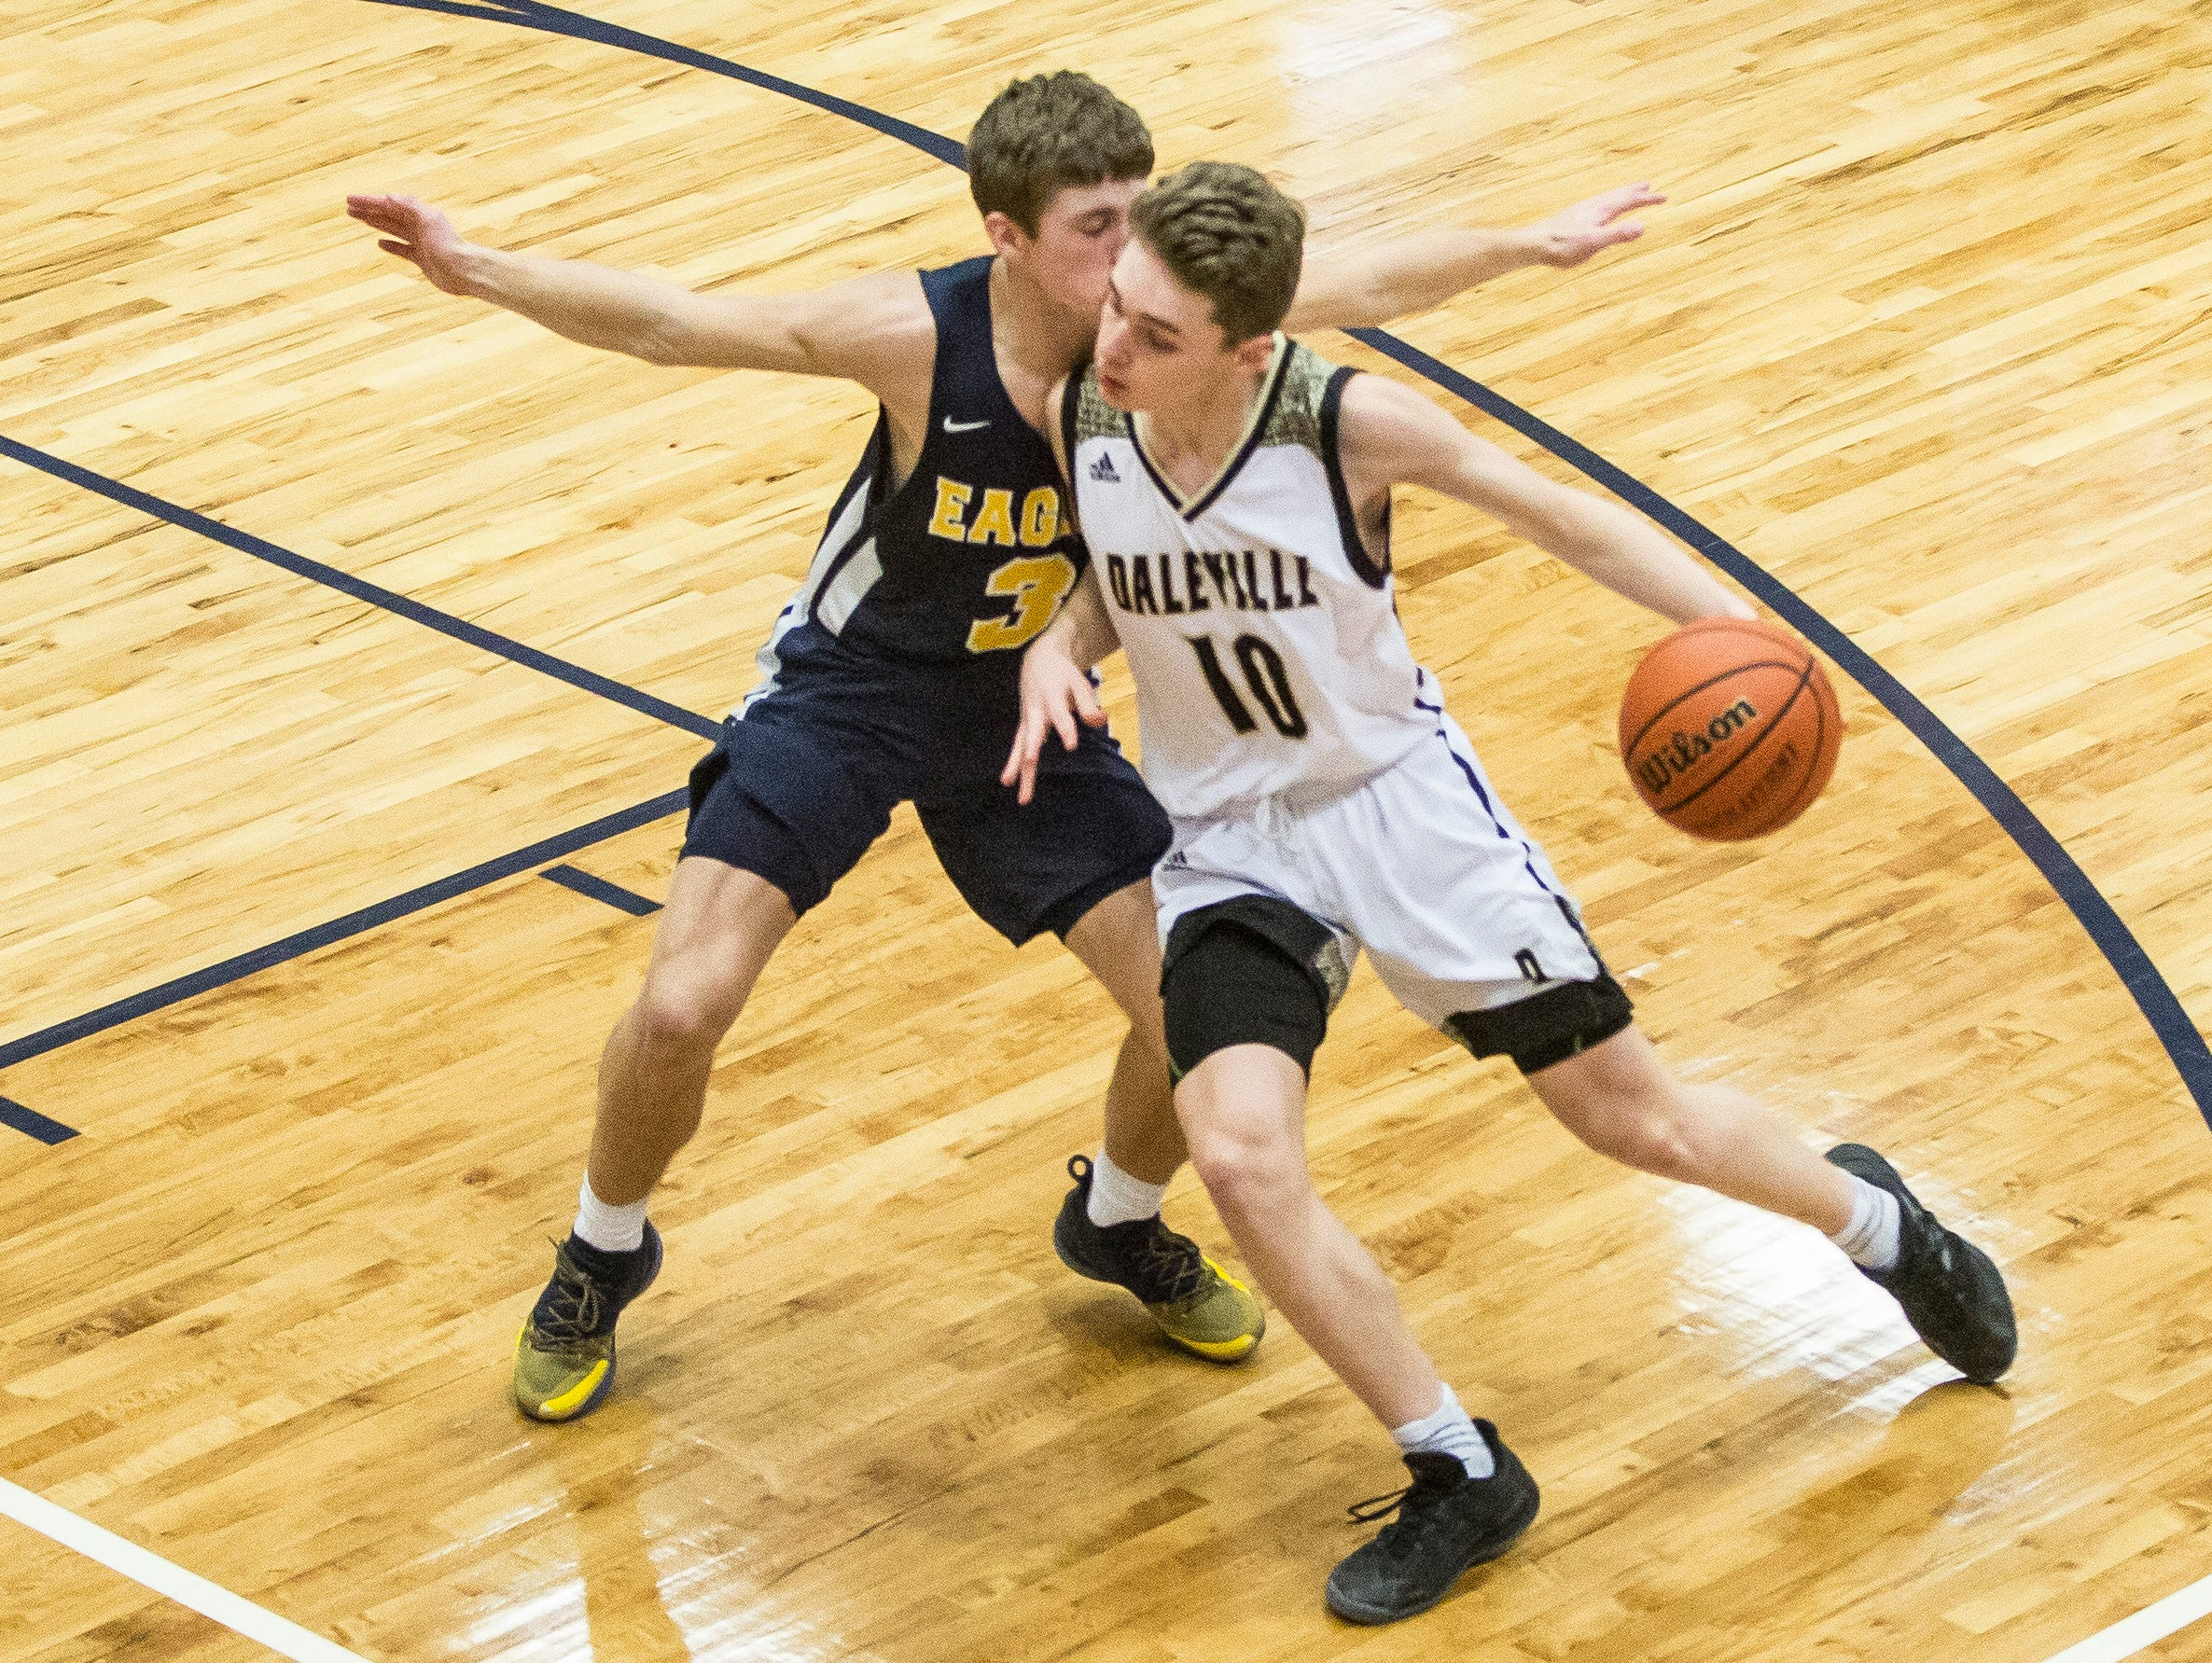 Daleville's Josh Price drives towards the net during the Delaware County Basketball Tournament championship game Monday night at Delta High School against Delta. Delta won the game 85-48.